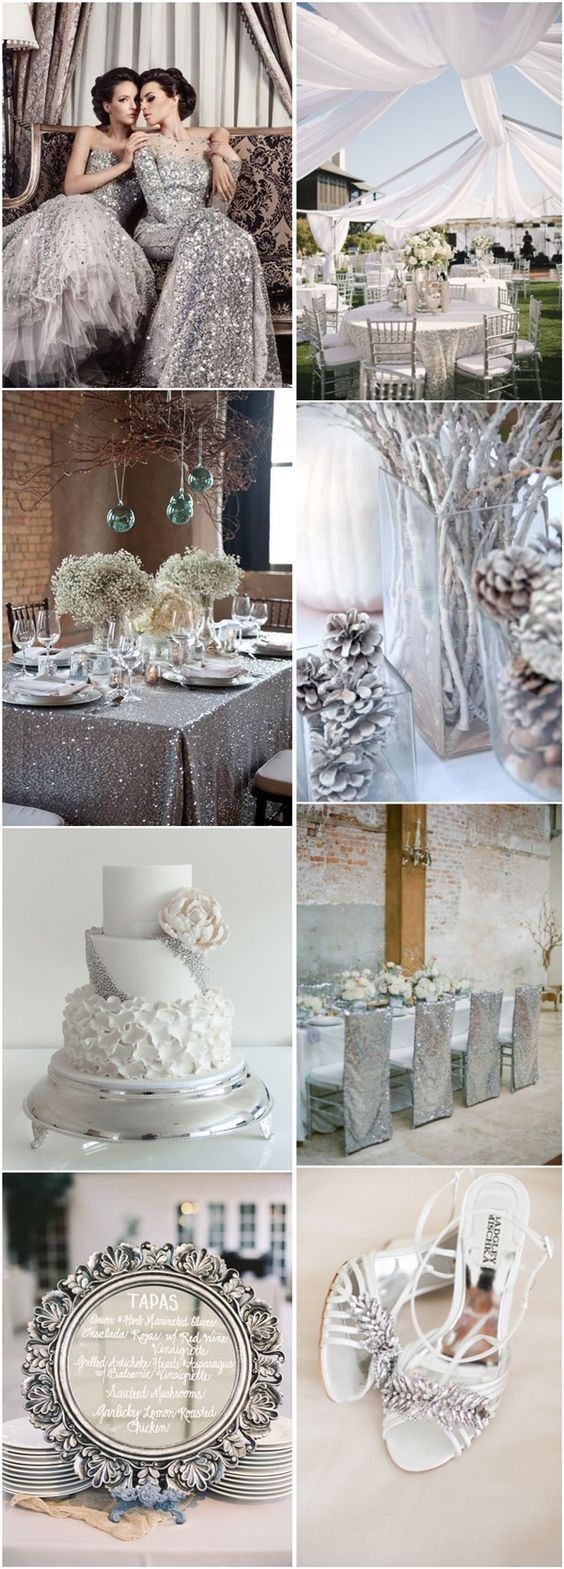 b7dfba59c8a6fda8120bb4db7d417986 Trend Forecasting: Top 15 Expected Wedding Color Ideas for 2019